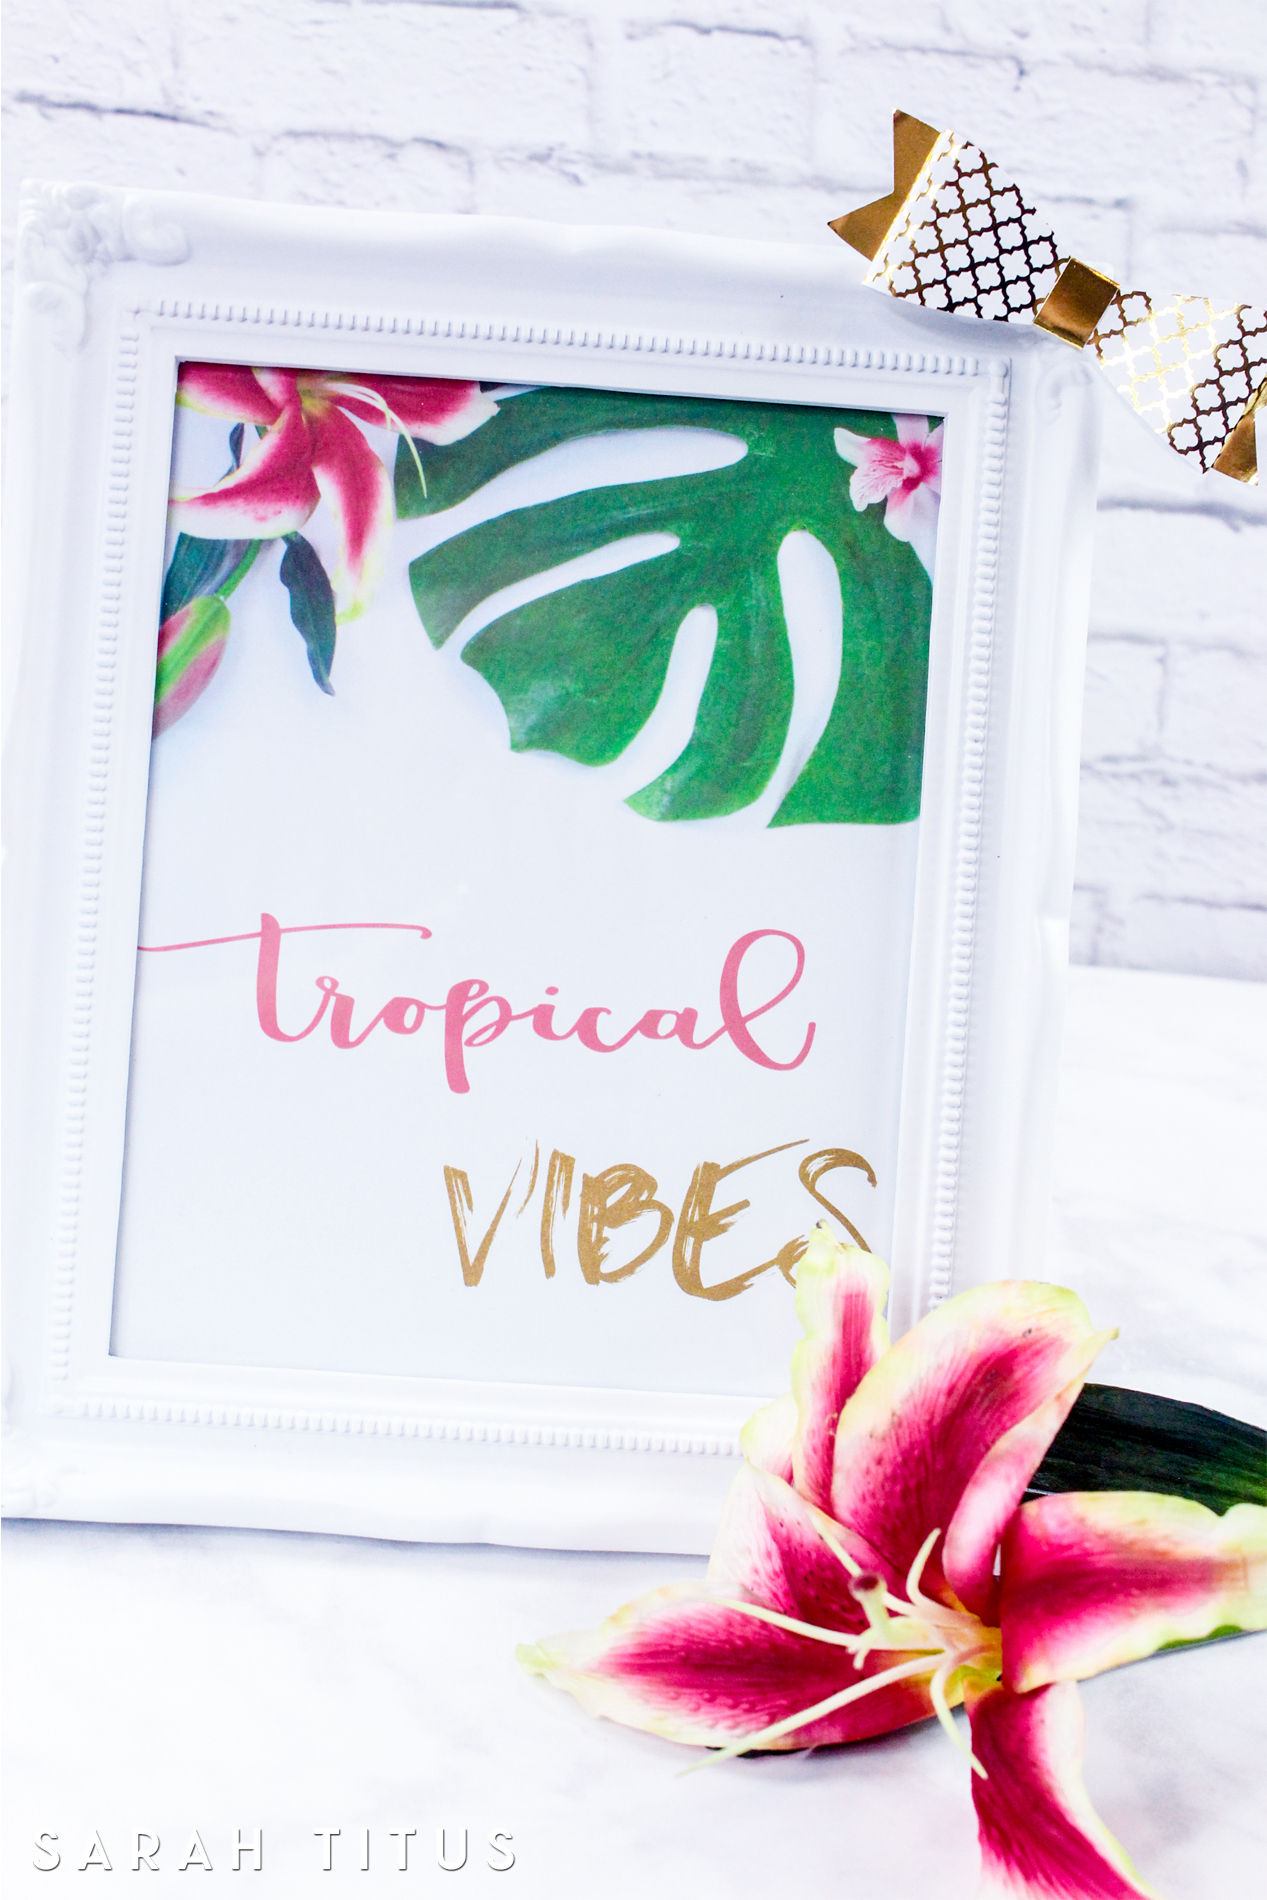 What we have in our space affects us and our emotions.This Tropical Vibes Wall Art will help you feel more relaxed, restful, and not to mention peaceful!